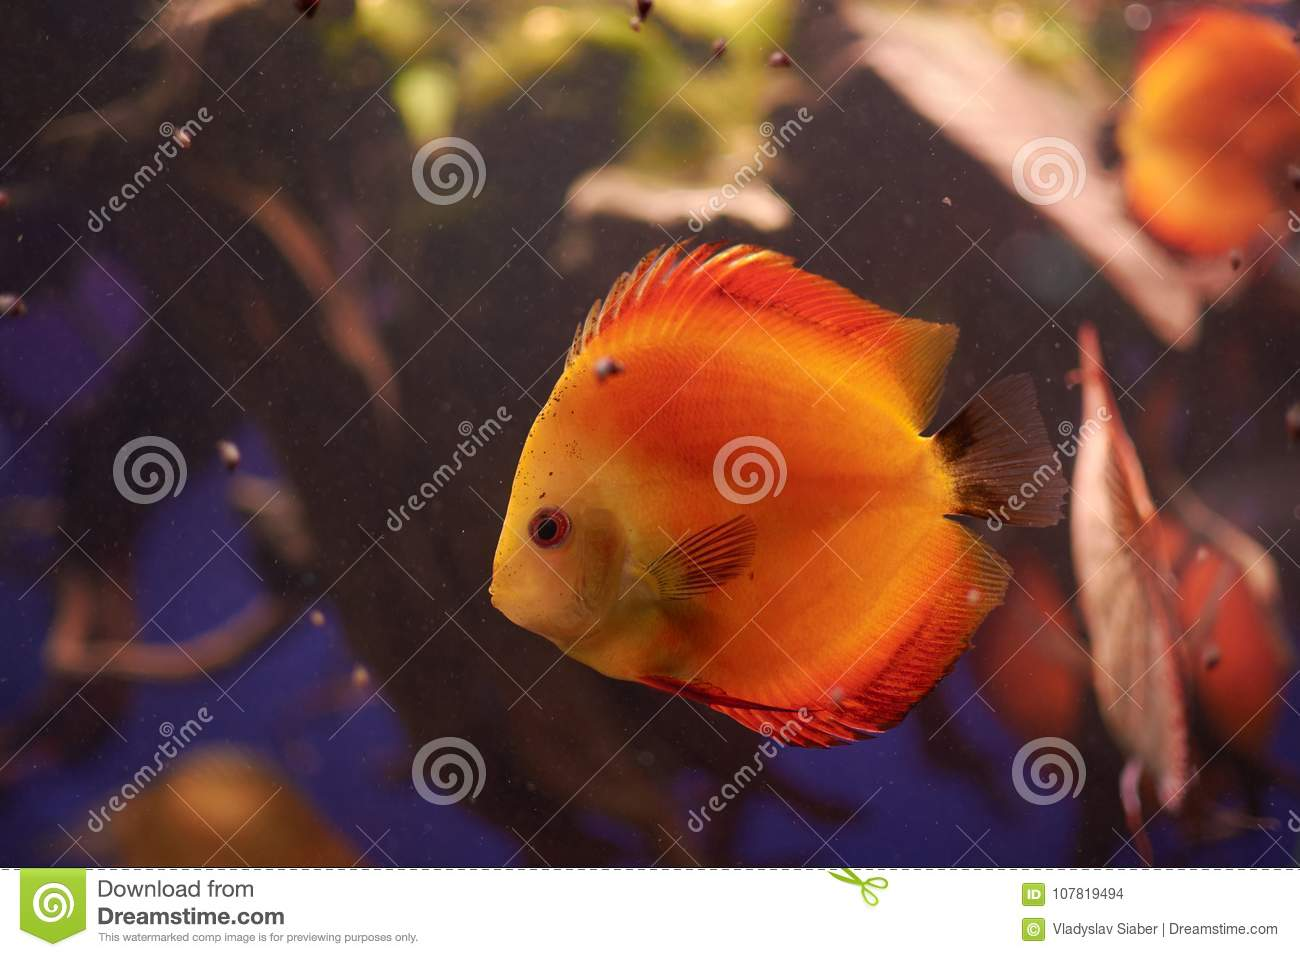 Symphysodon Or Discus Fish From Amazon River Stock Photo - Image of ...